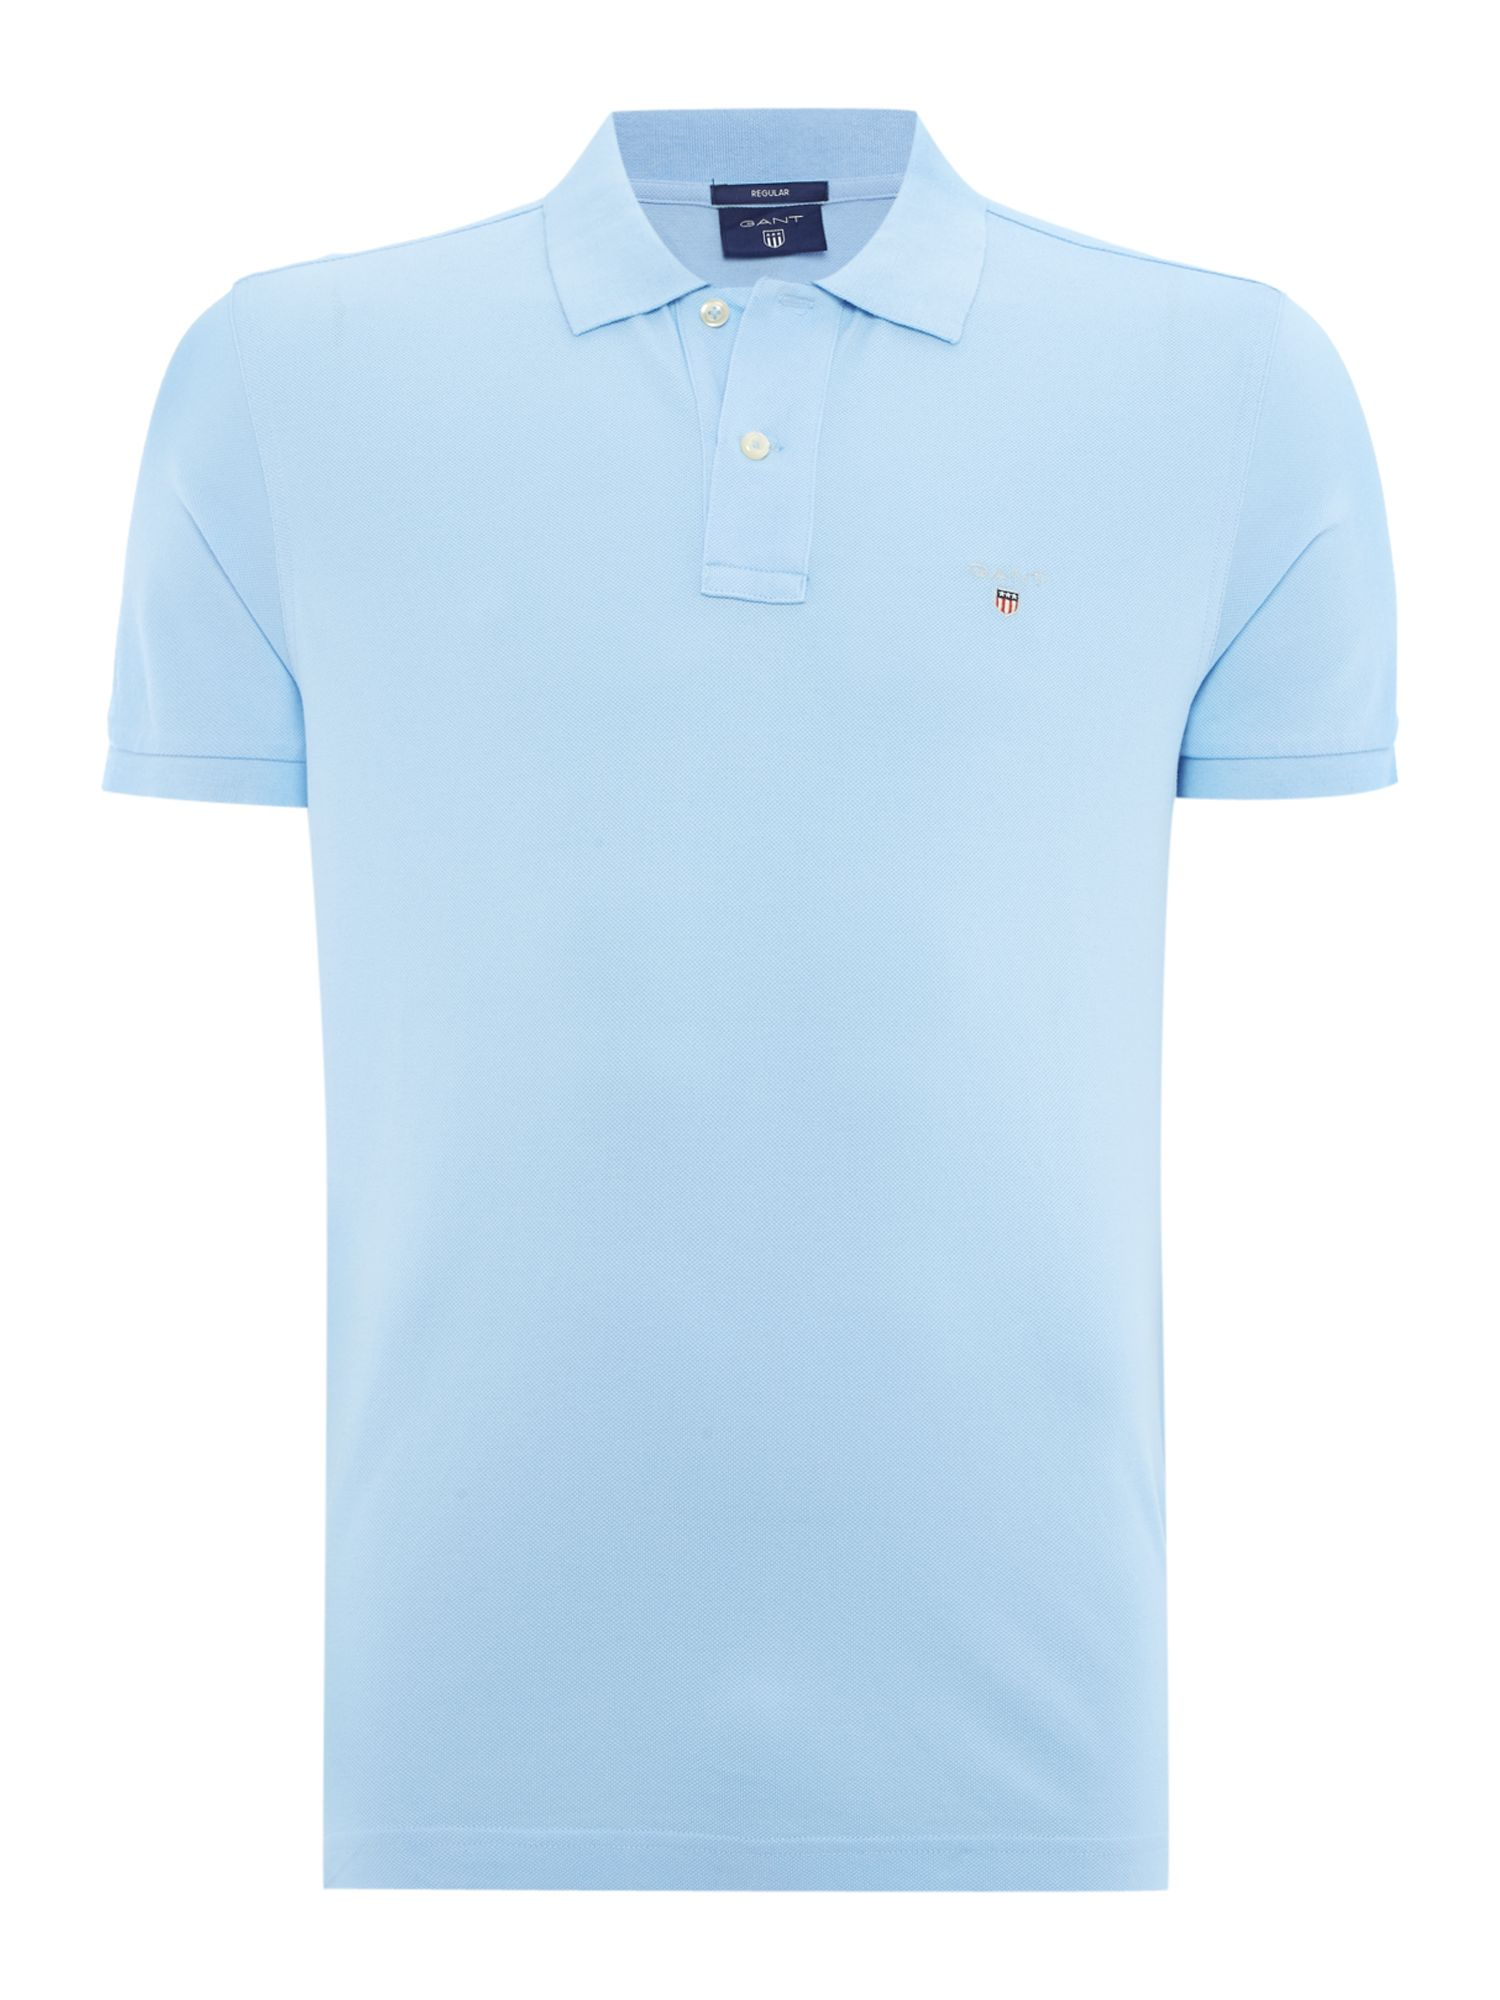 Men's Gant Original Pique Short Sleeve Polo, Light Blue